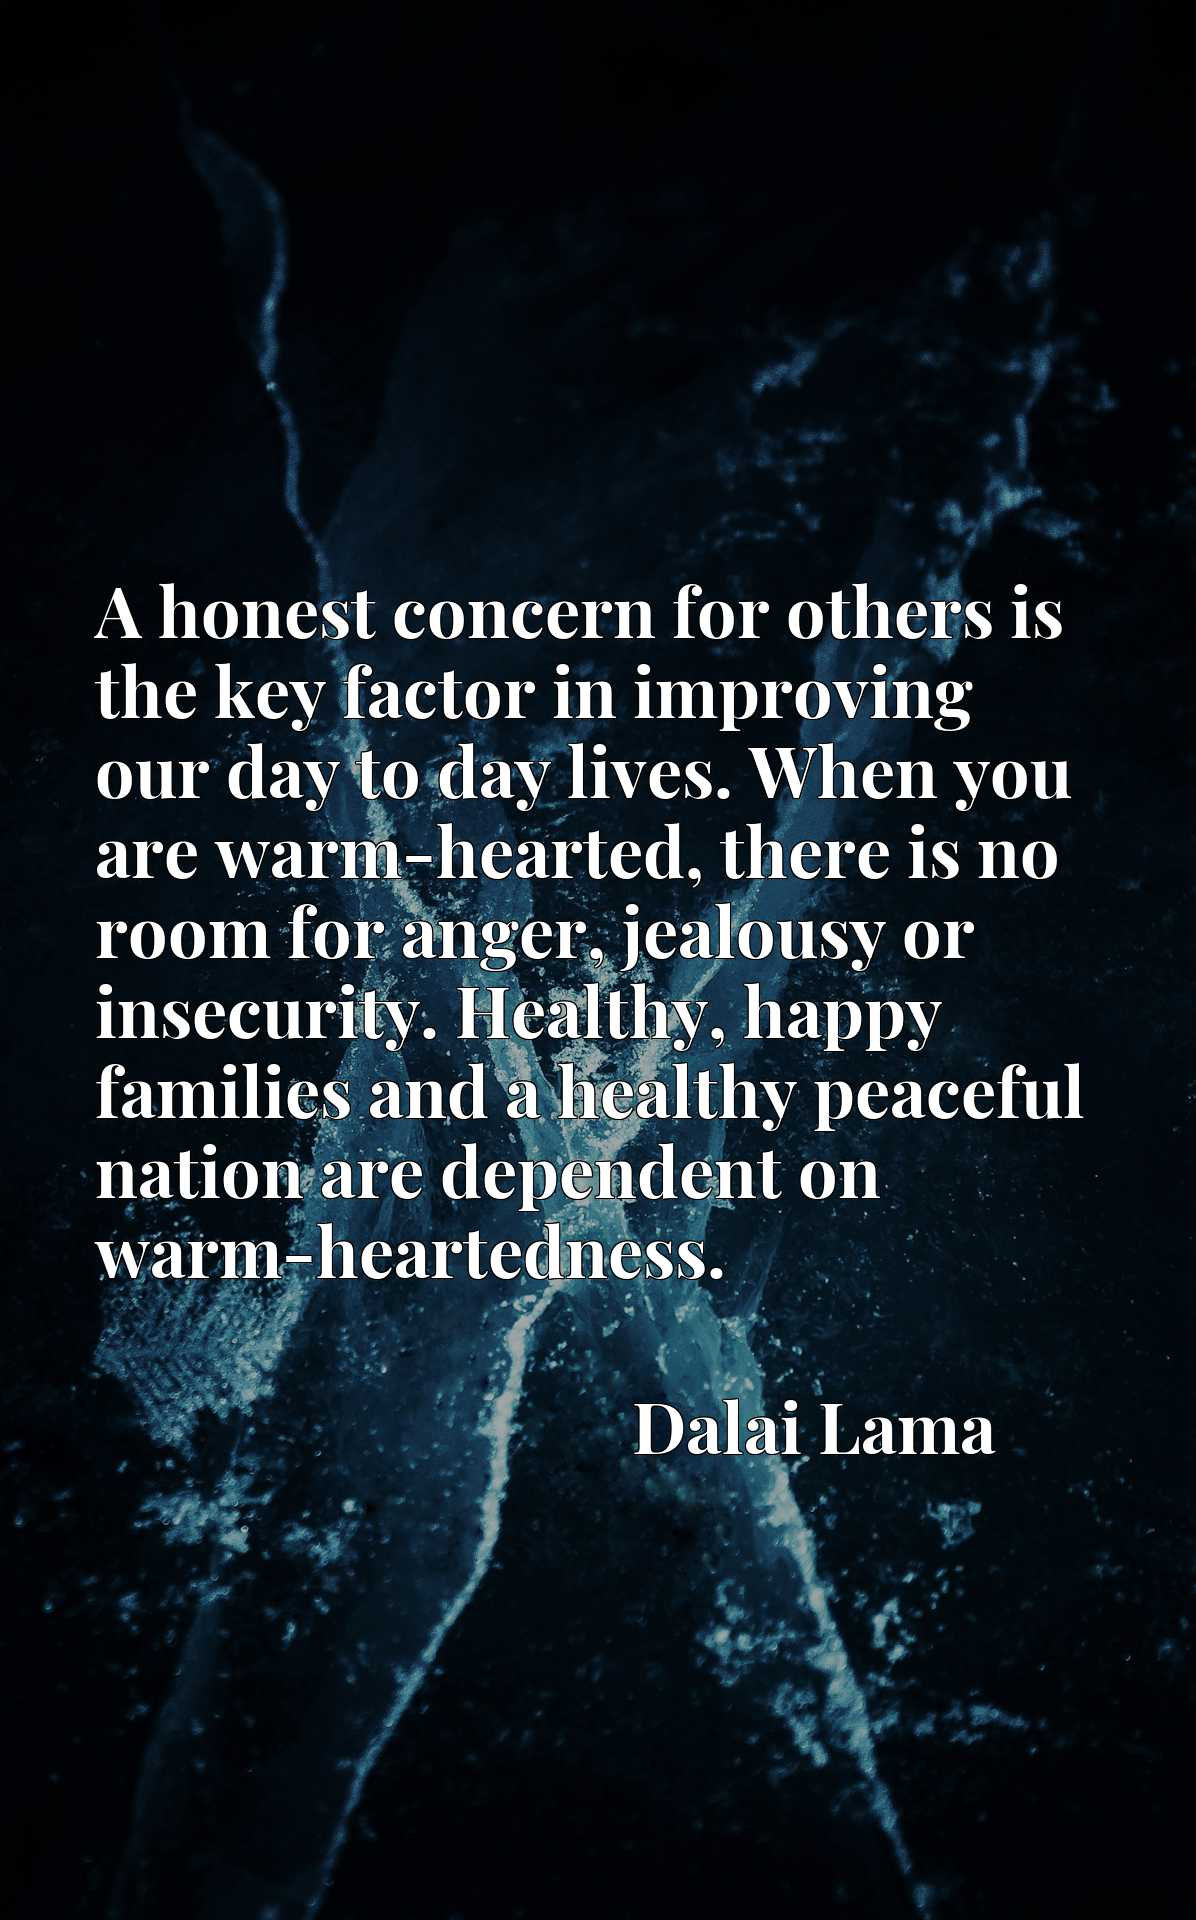 A honest concern for others is the key factor in improving our day to day lives. When you are warm-hearted, there is no room for anger, jealousy or insecurity. Healthy, happy families and a healthy peaceful nation are dependent on warm-heartedness.